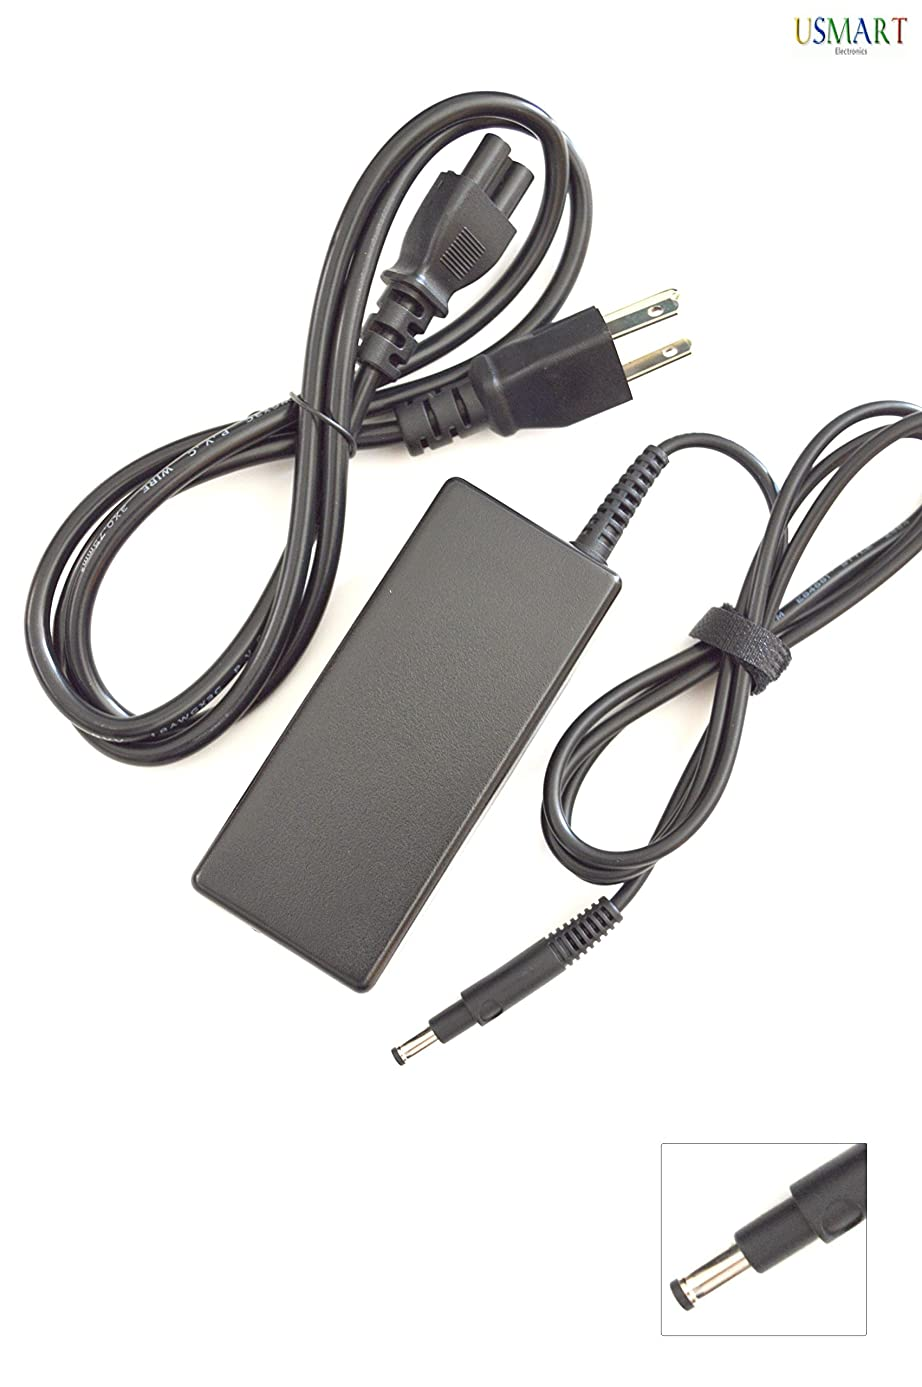 Usmart? AC Adapter Laptop Charger for HP ENVY TouchSmart 4-1215dx Ultrabook Laptop*High Quality NEW Power Supply 3 years warranty*